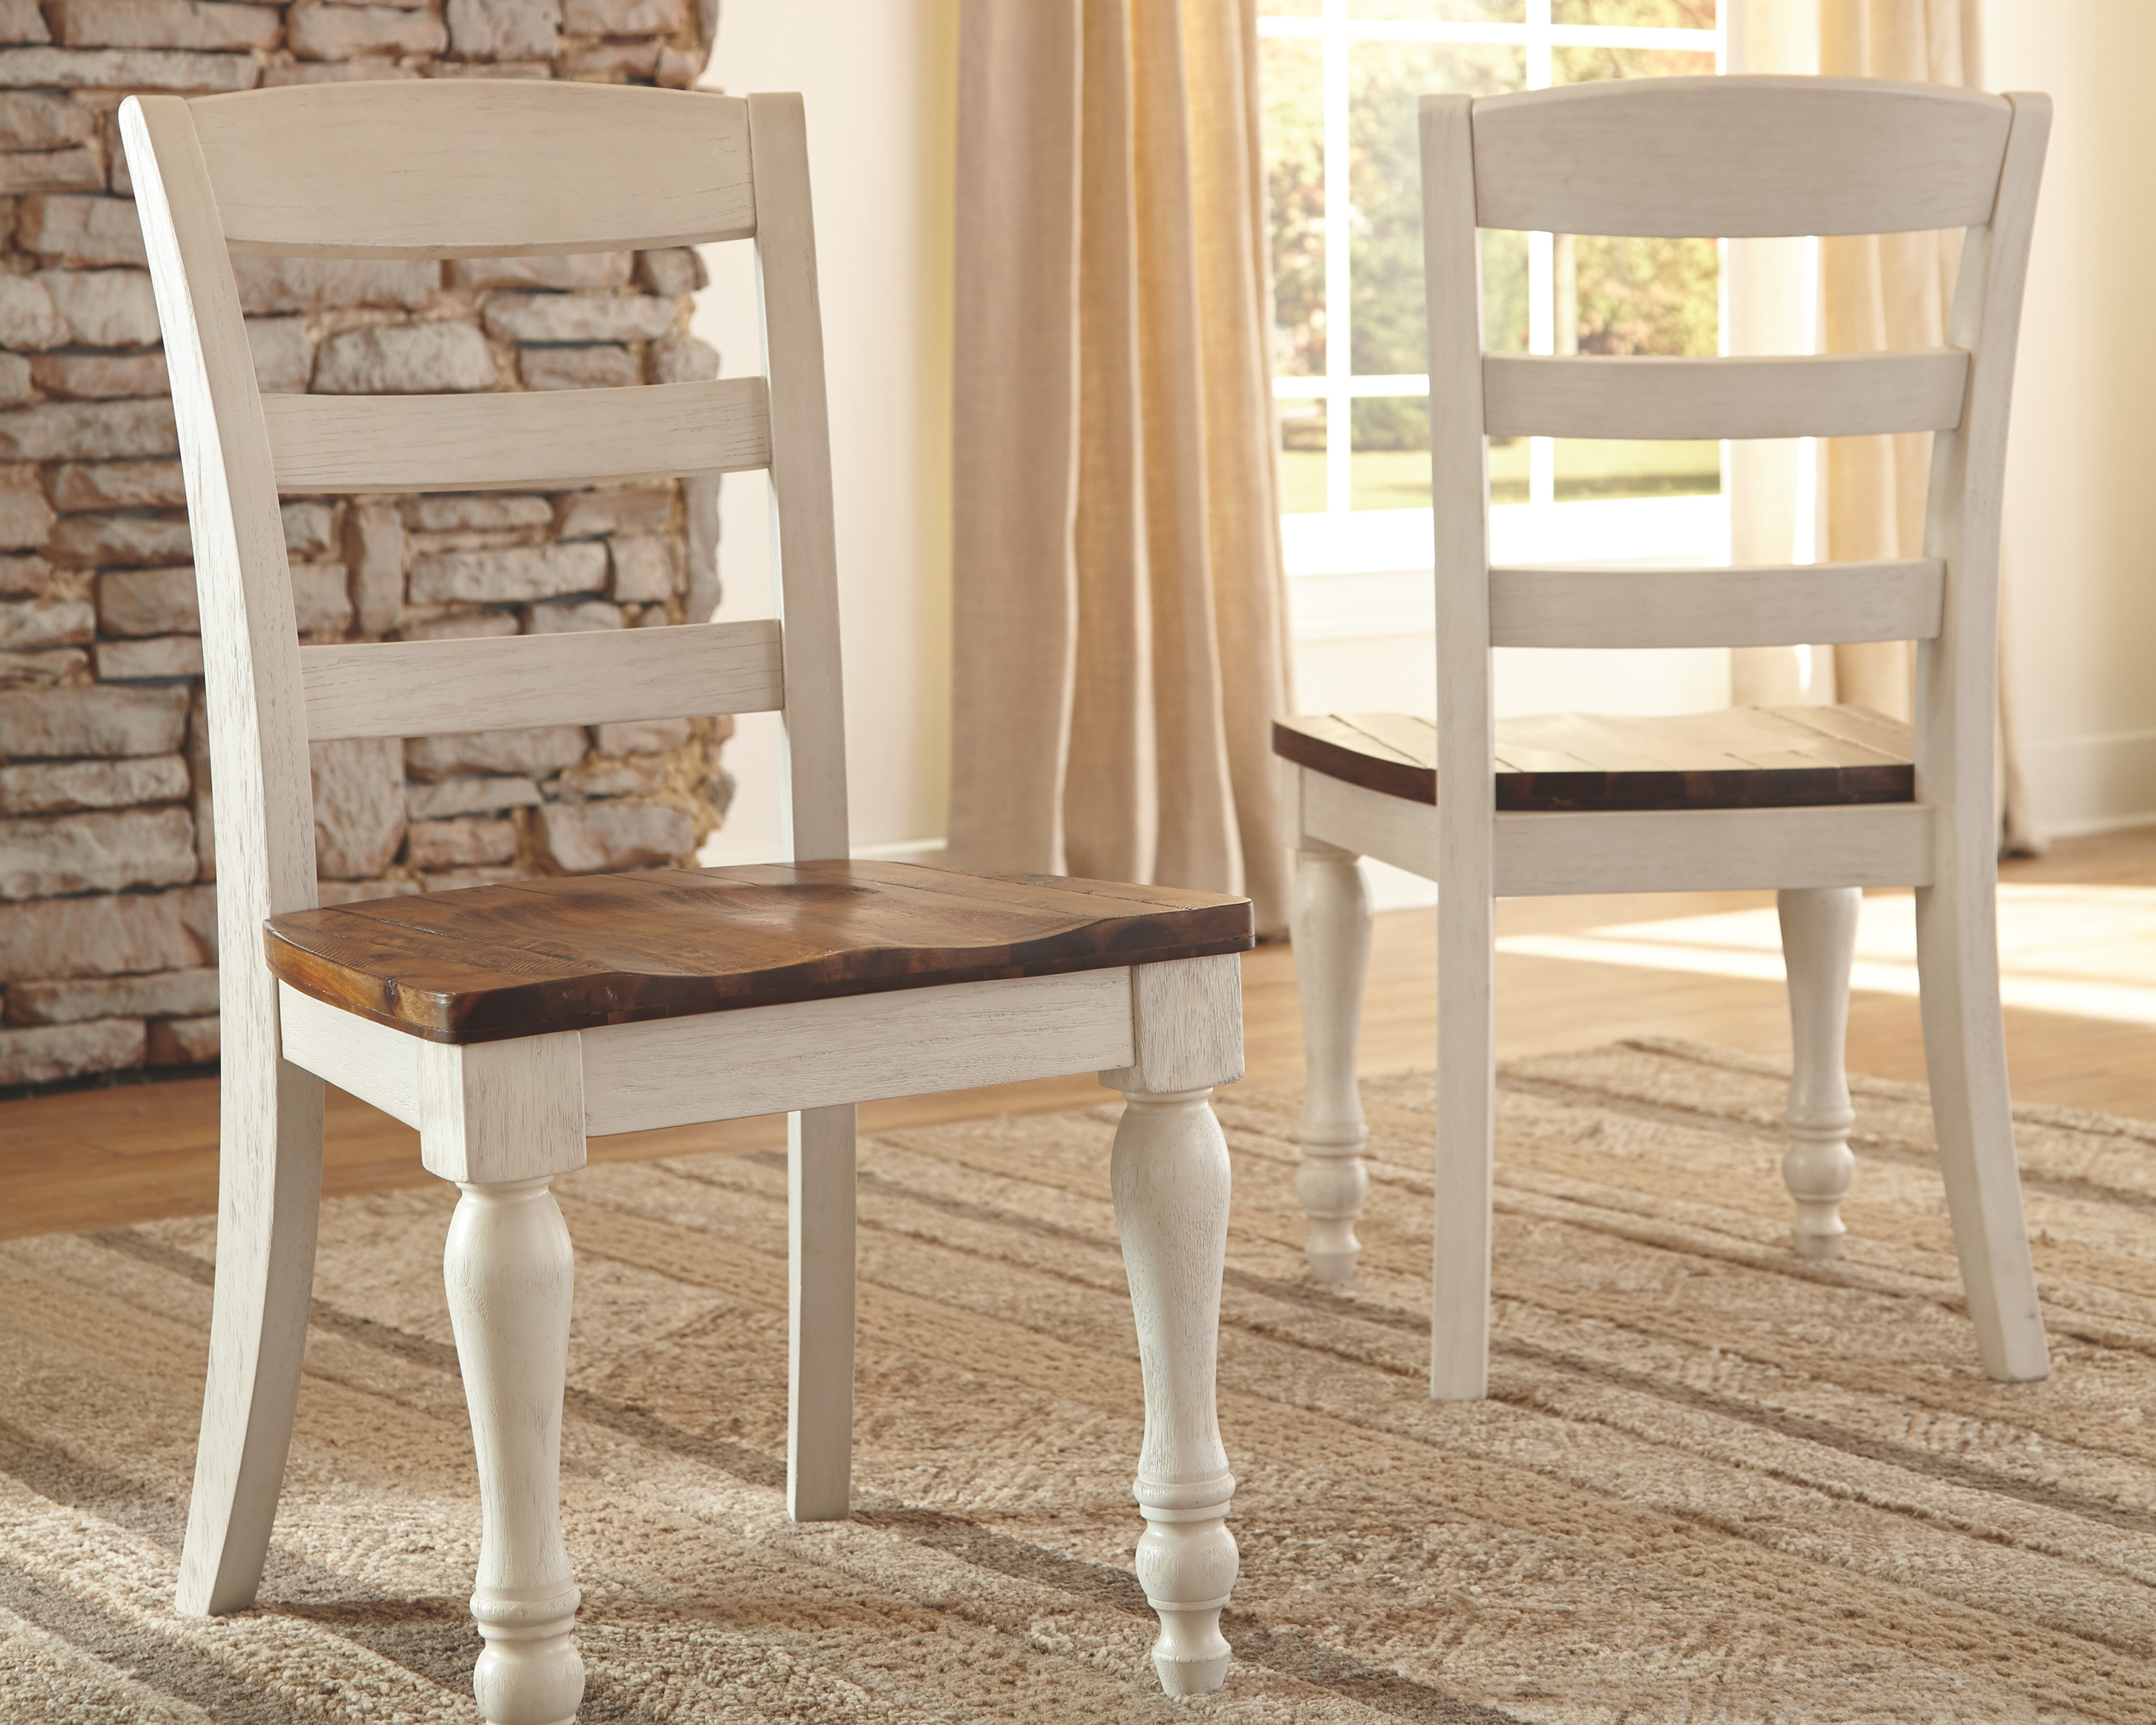 Marsilona Dining Room Chairs Set Of 3 By Millennium By Ashley D712d6 Northpoint Furniture Mattress